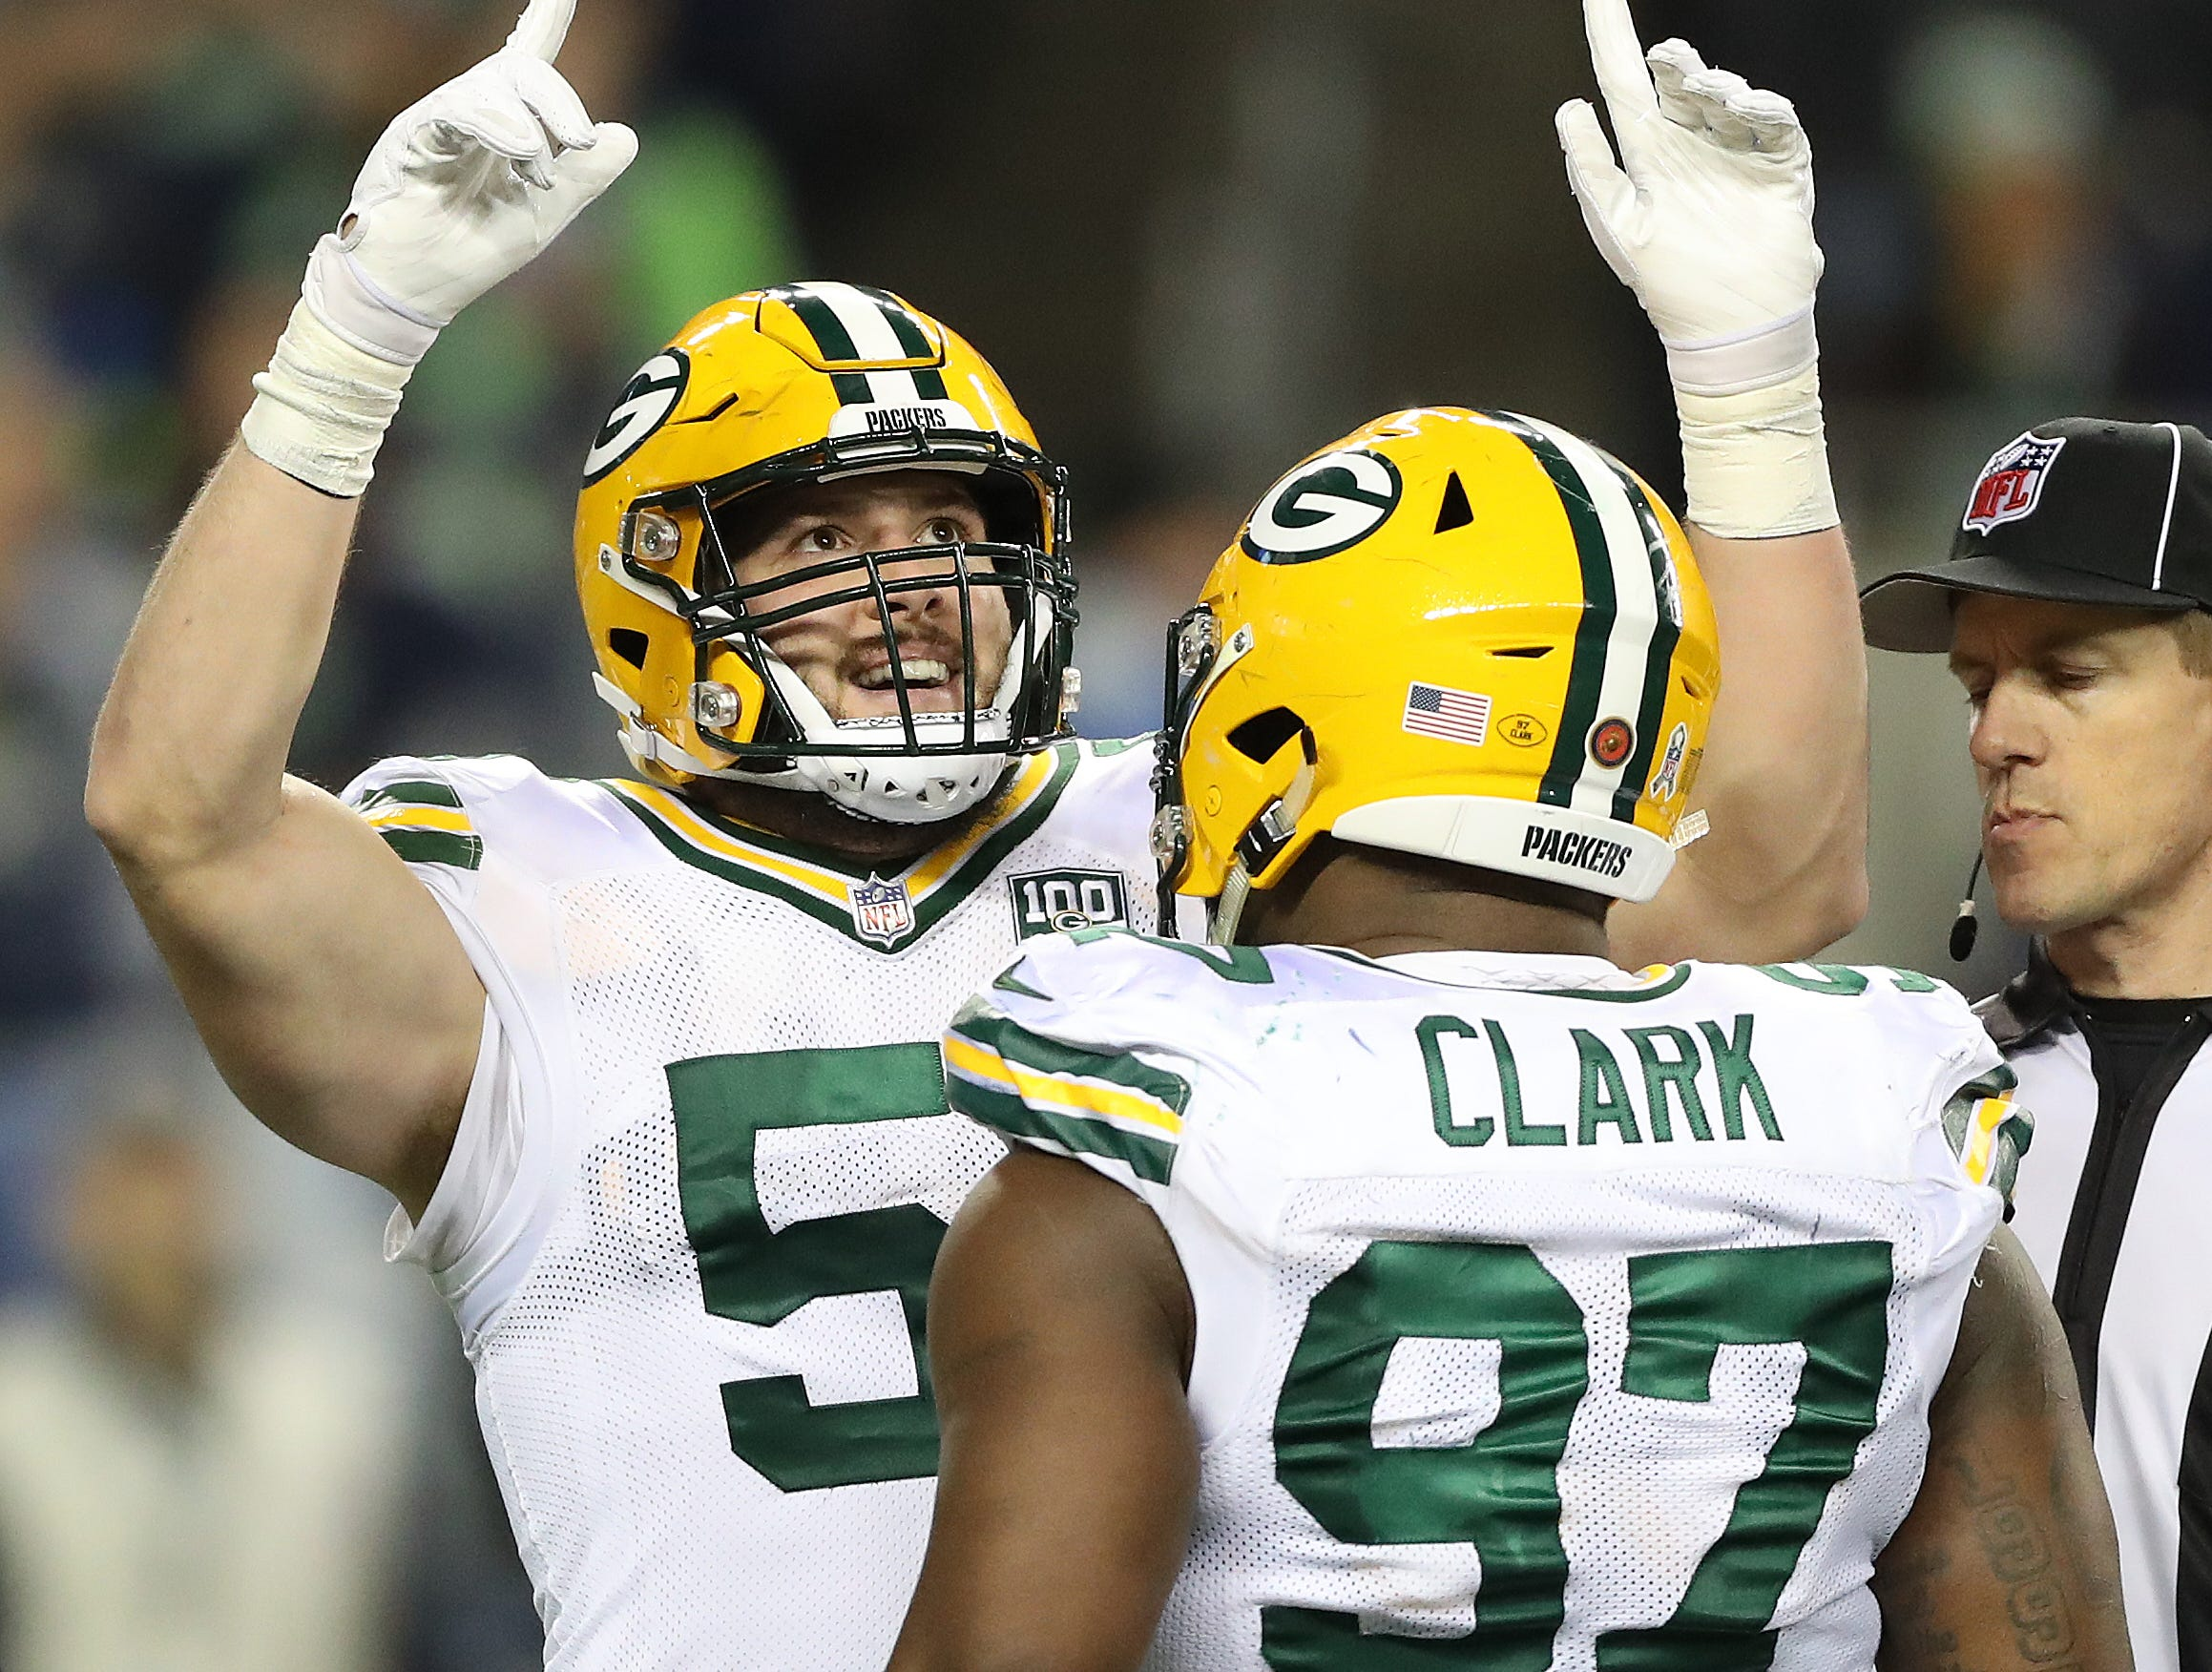 Green Bay Packers linebacker Kyler Fackrell (51) celebrates a sack with nose tackle Kenny Clark (97) against the Seattle Seahawks at CenturyLink Field Thursday, November 15, 2018 in Seattle, WA. Jim Matthews/USA TODAY NETWORK-Wis